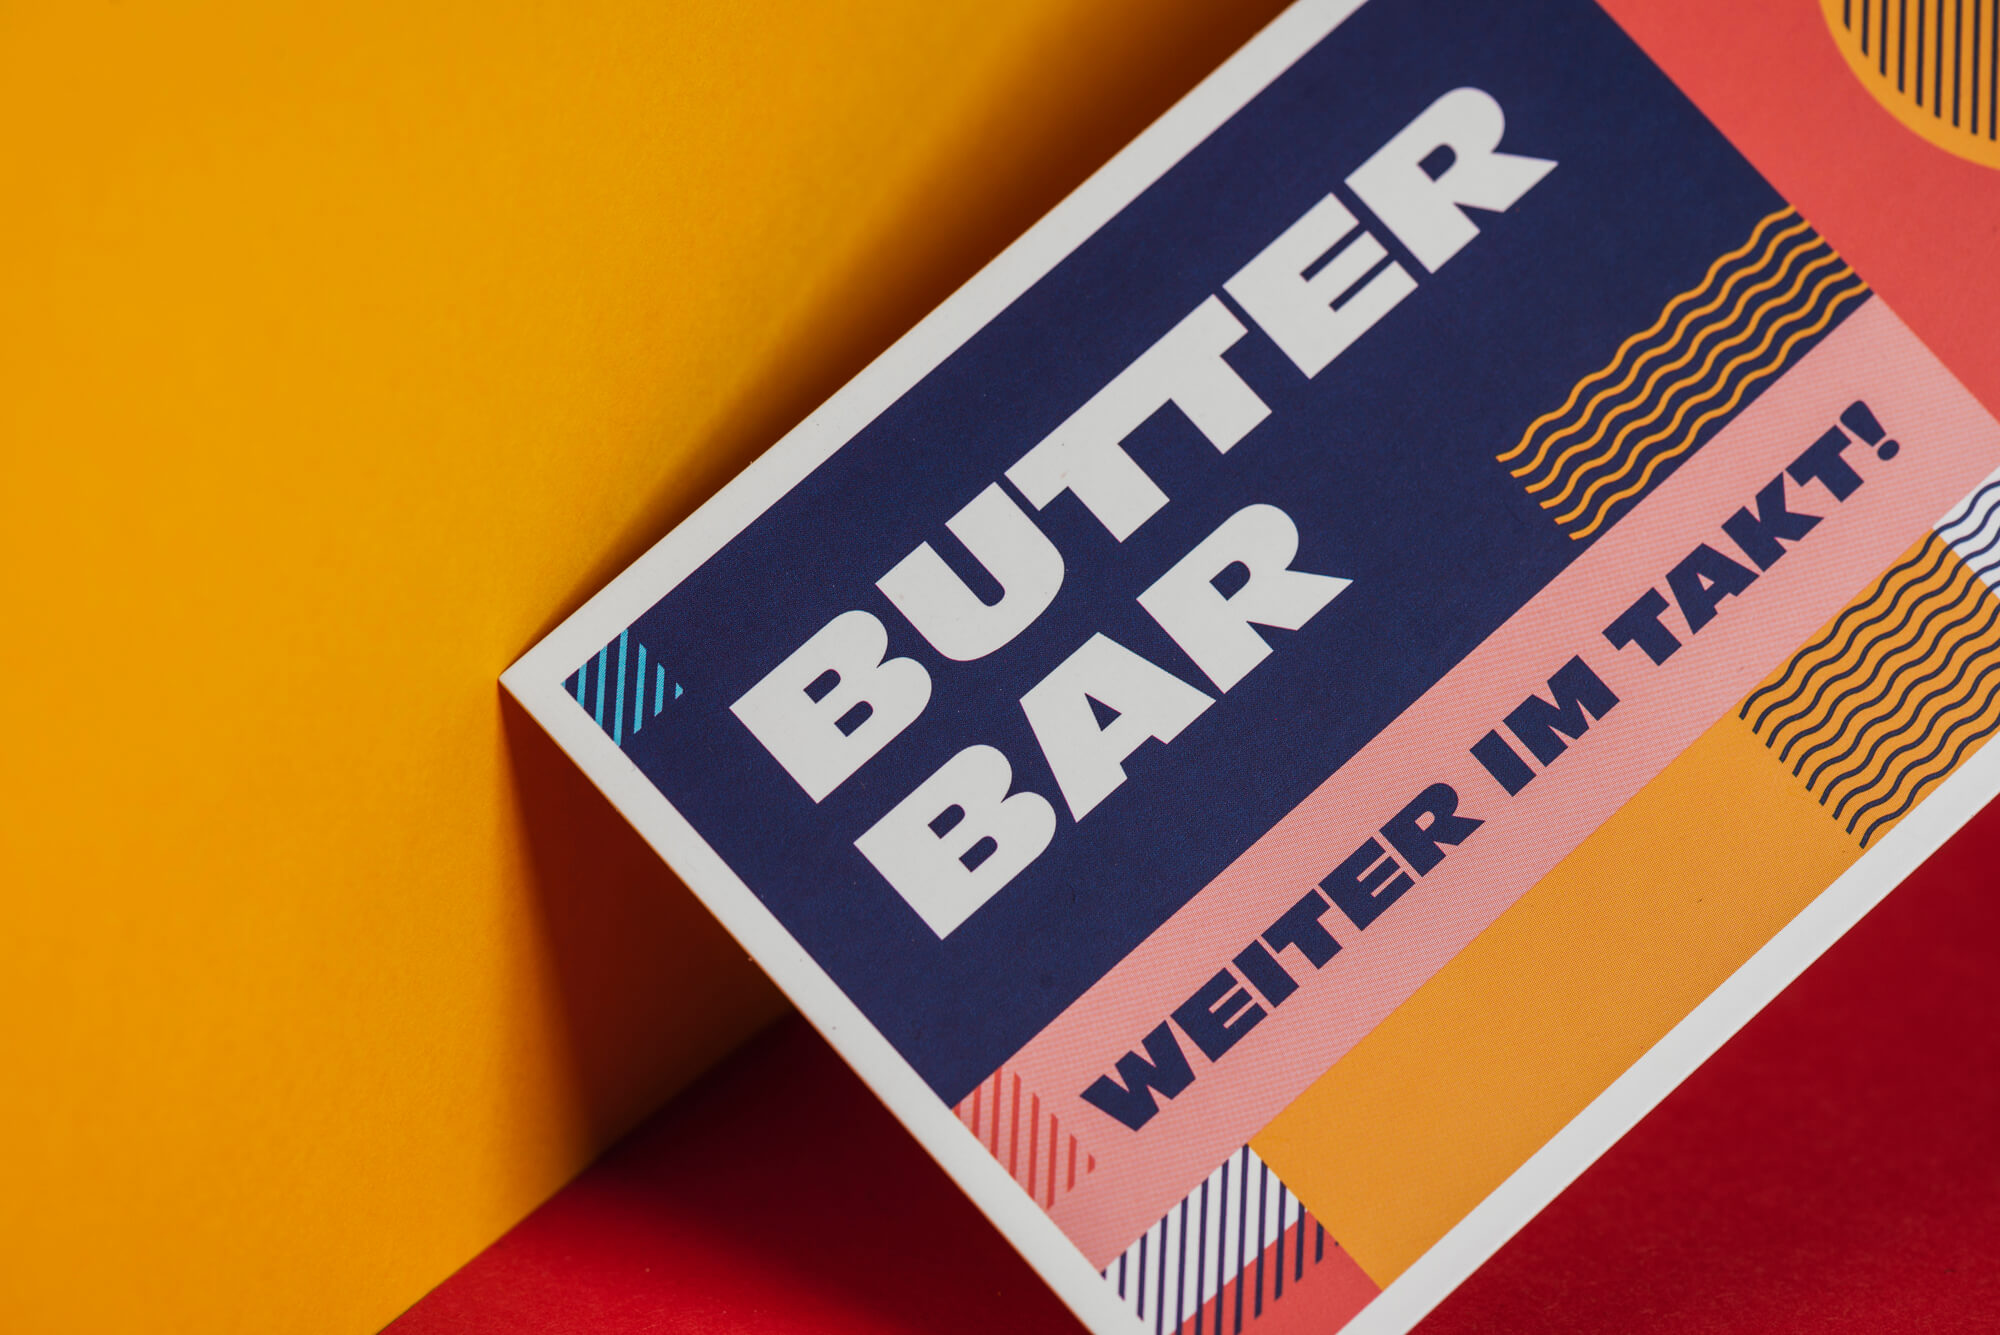 Butter_Bar_by_Lukas_Diemling-6